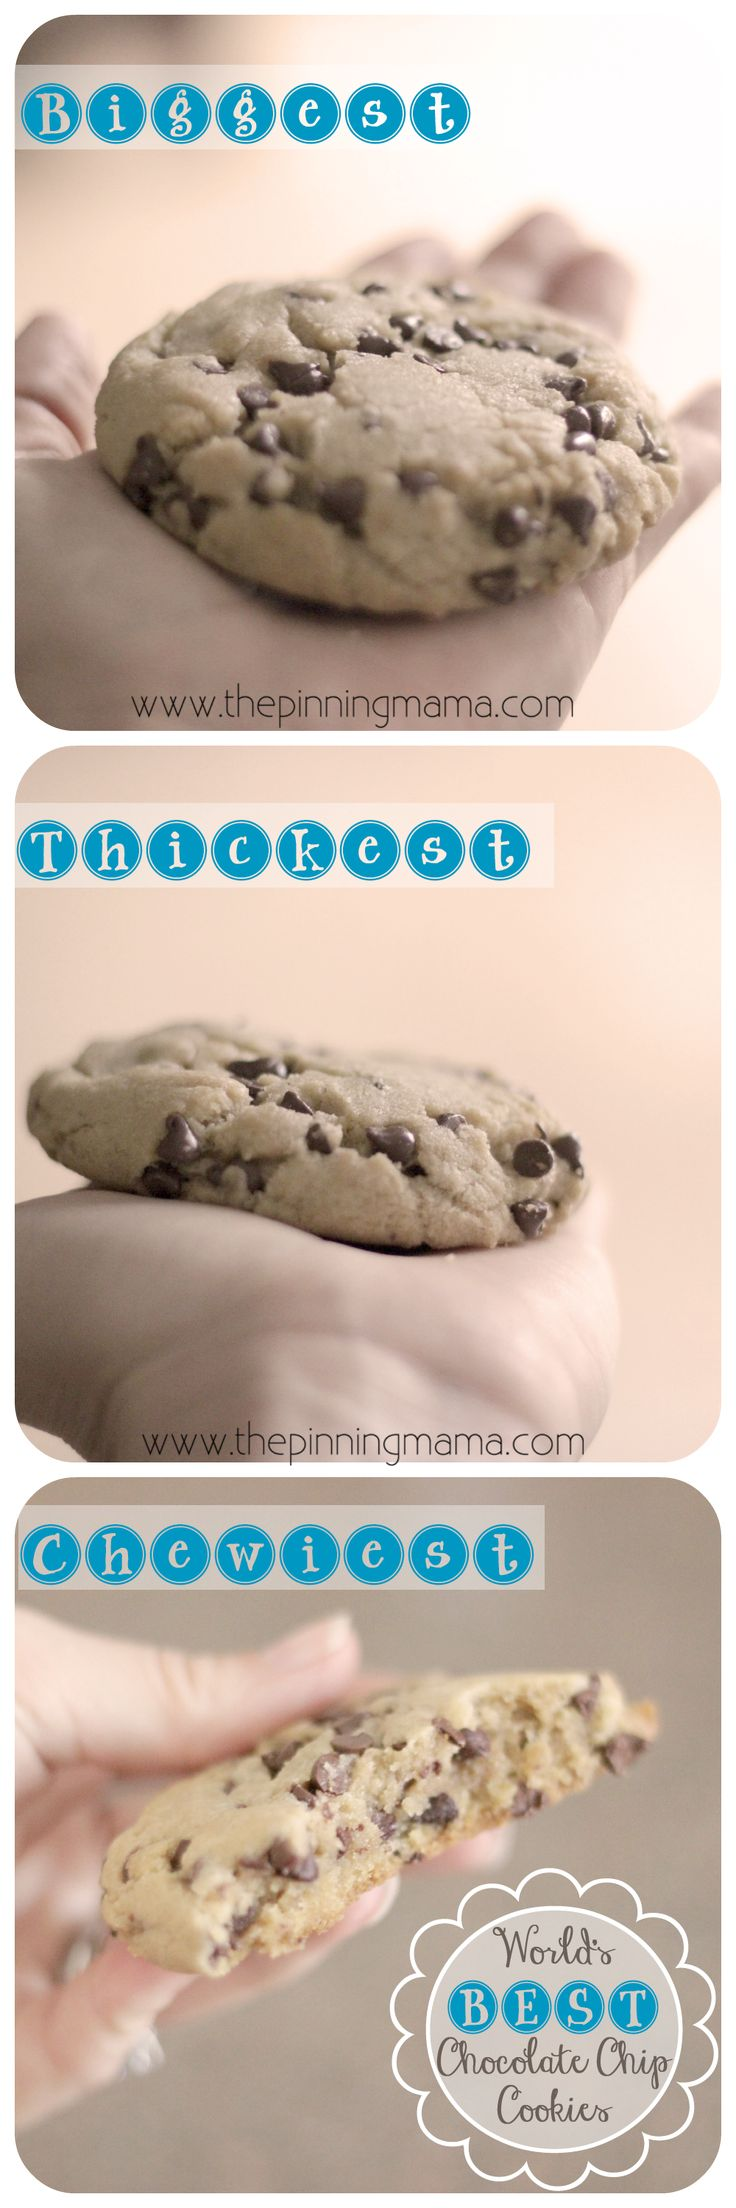 "Best chocolate chip cookies ever!!!-----Someday I am going to test all these ""Best chocolate chip cookie"" recipes"